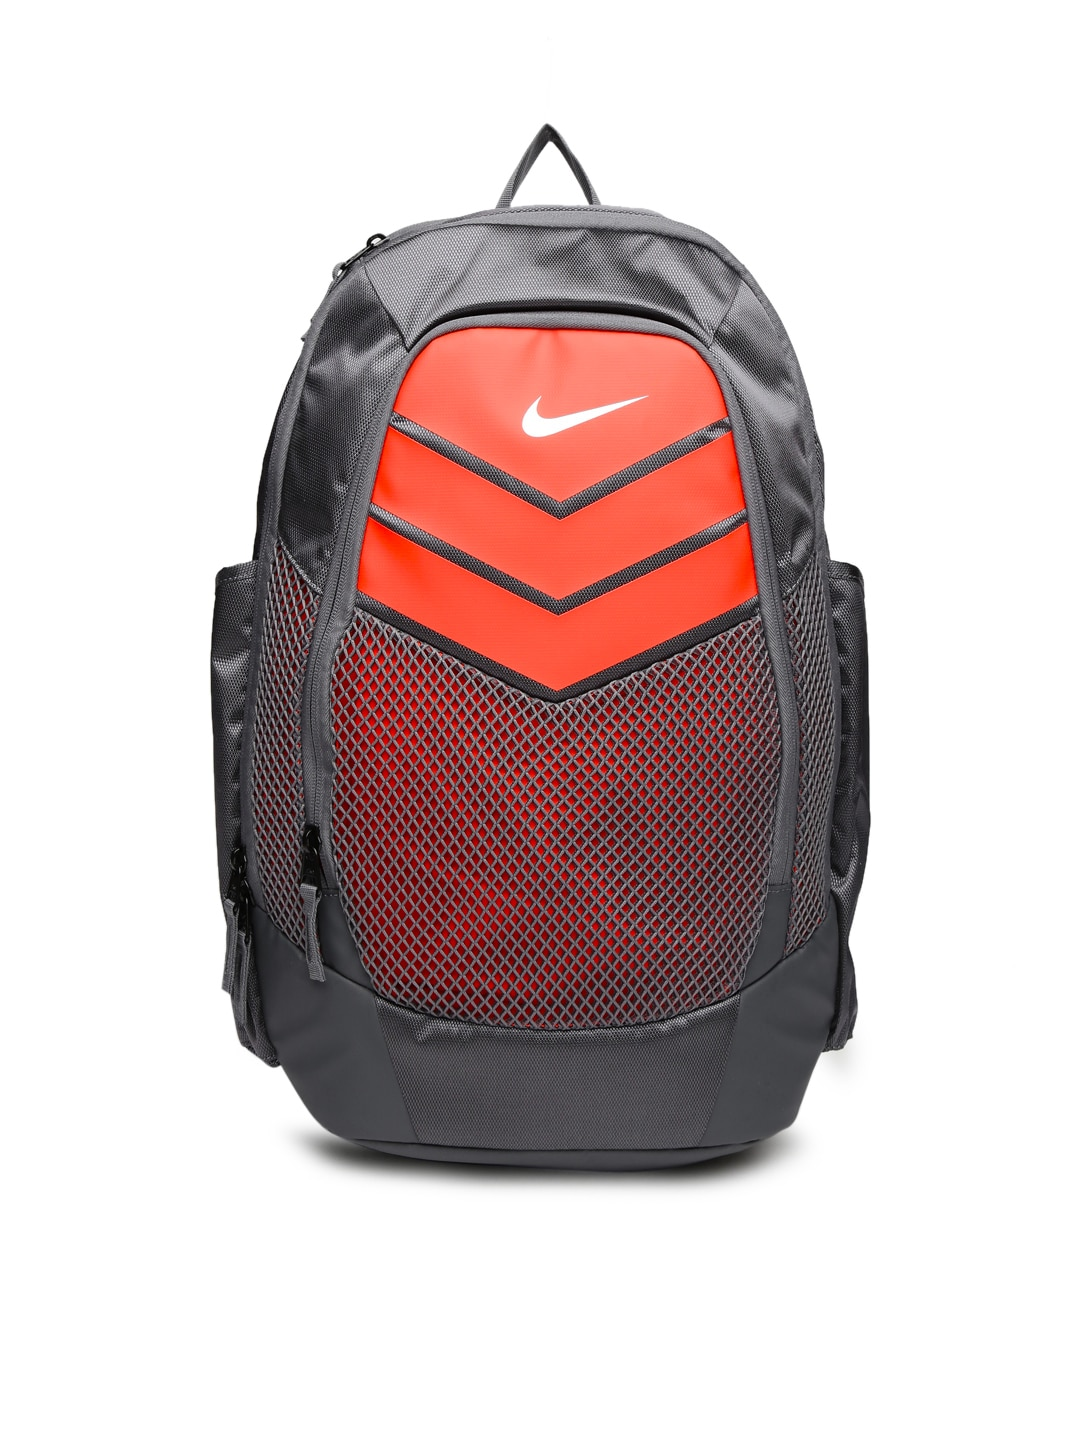 nike air backpack 2017